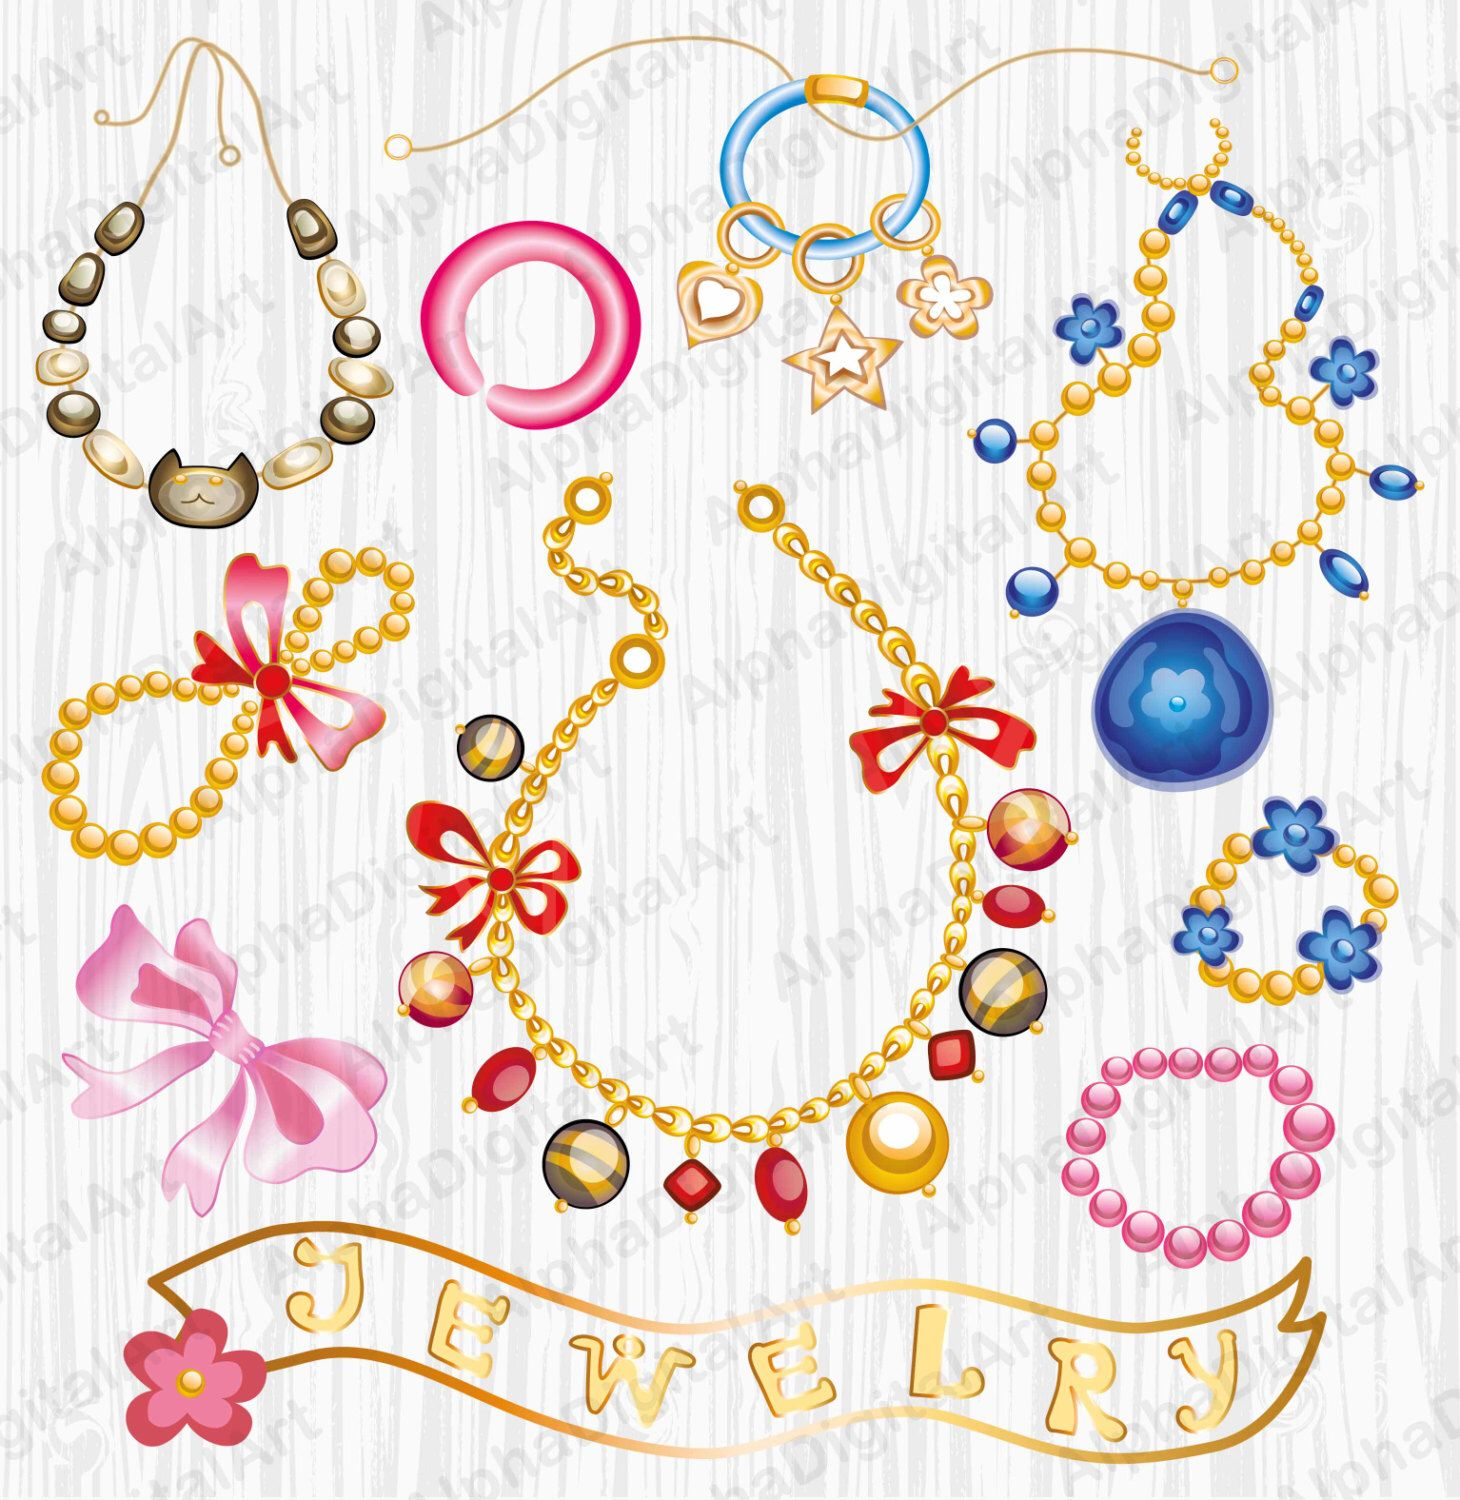 11 jewelry clipart gem rings clipart digital gems bracelet clipart rh pinterest com jewelry clip art borders jewelry clipart free